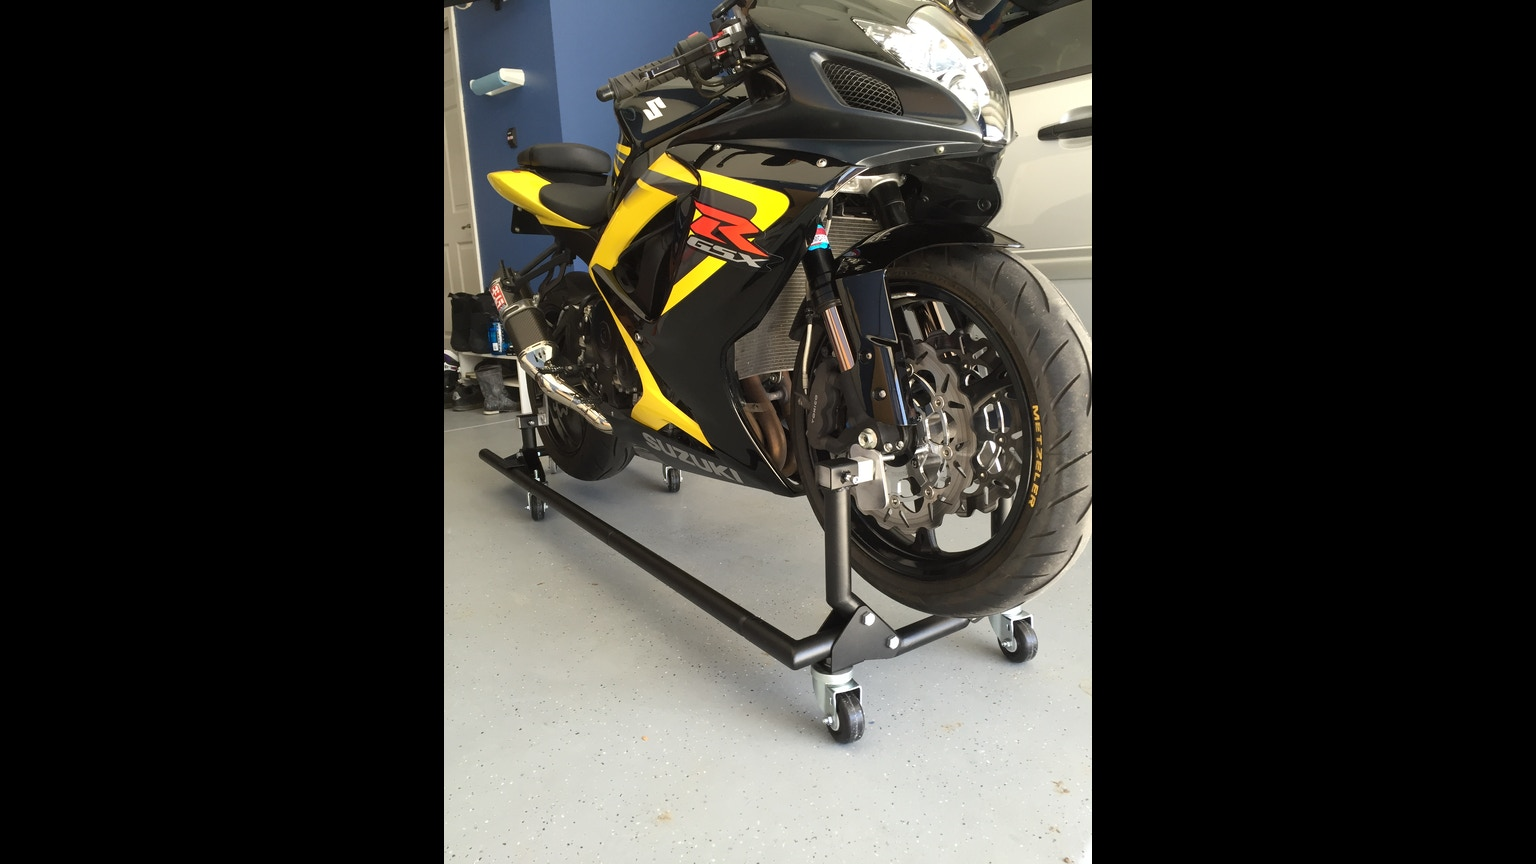 Reno Auto Sound >> Phoenix Racing Stands: Innovative Motorcycle Stands by Phoenix Racing Stands —Kickstarter